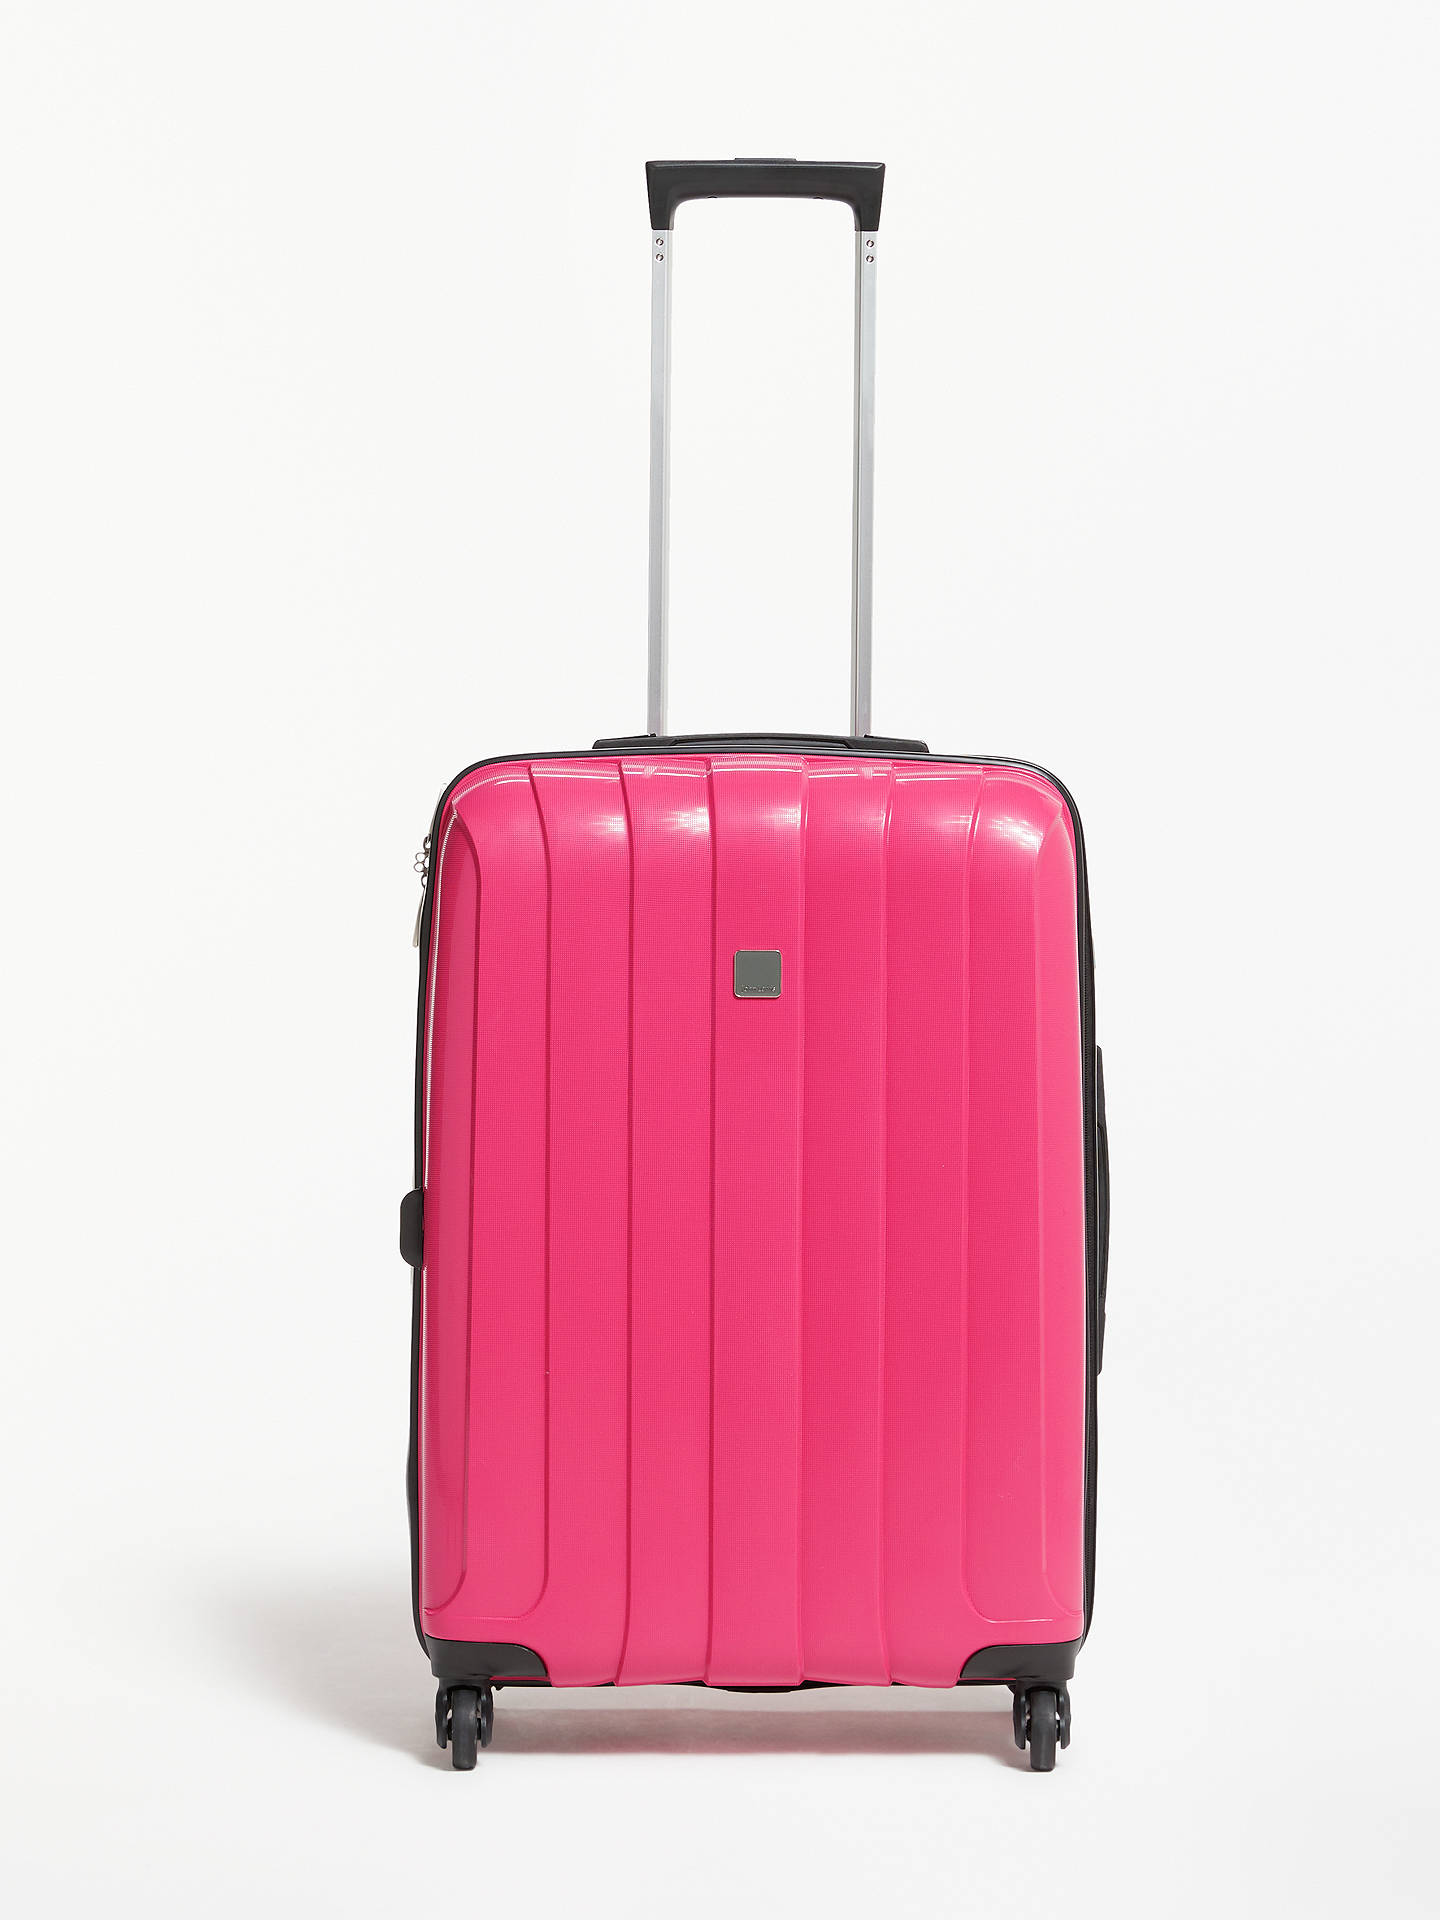 5a64e89bfc Buy John Lewis & Partners Miami 4-Wheel 65cm Medium Suitcase, Pink Online  at ...